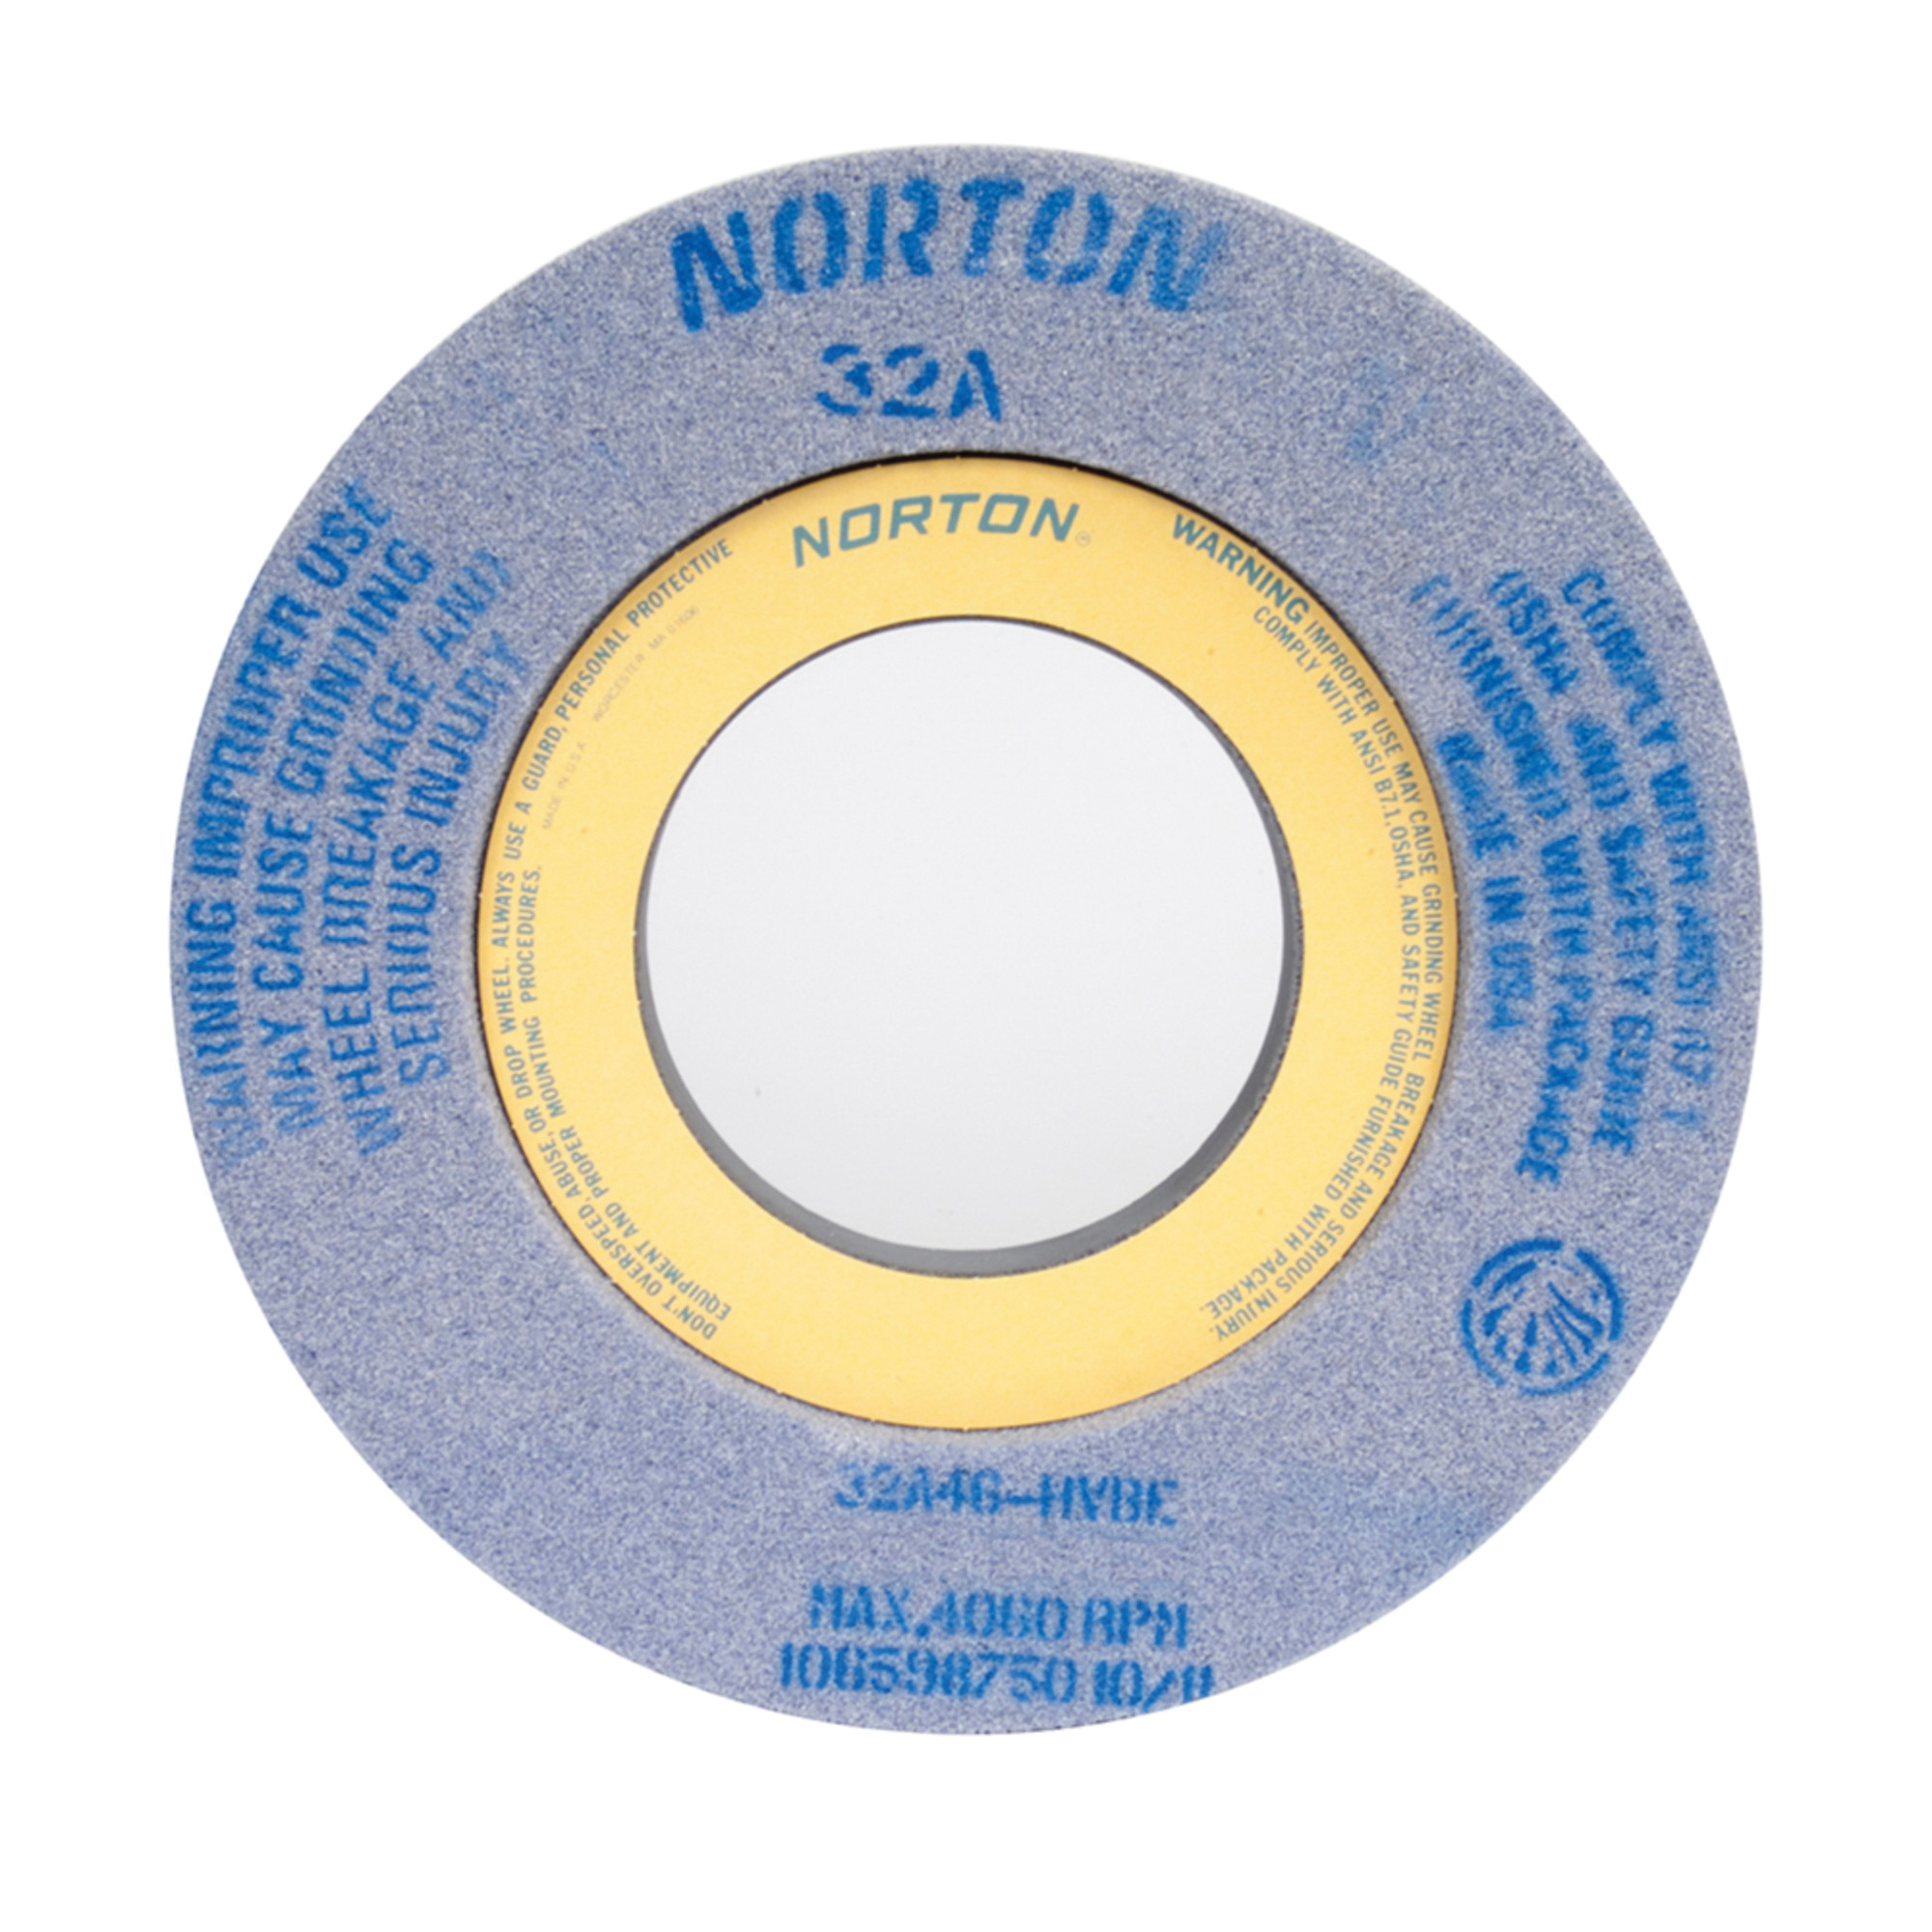 Norton® 66253263596 32A 2-Side Recessed Toolroom Wheel, 12 in Dia x 2 in THK, 5 in Center Hole, 46 Grit, Aluminum Oxide Abrasive